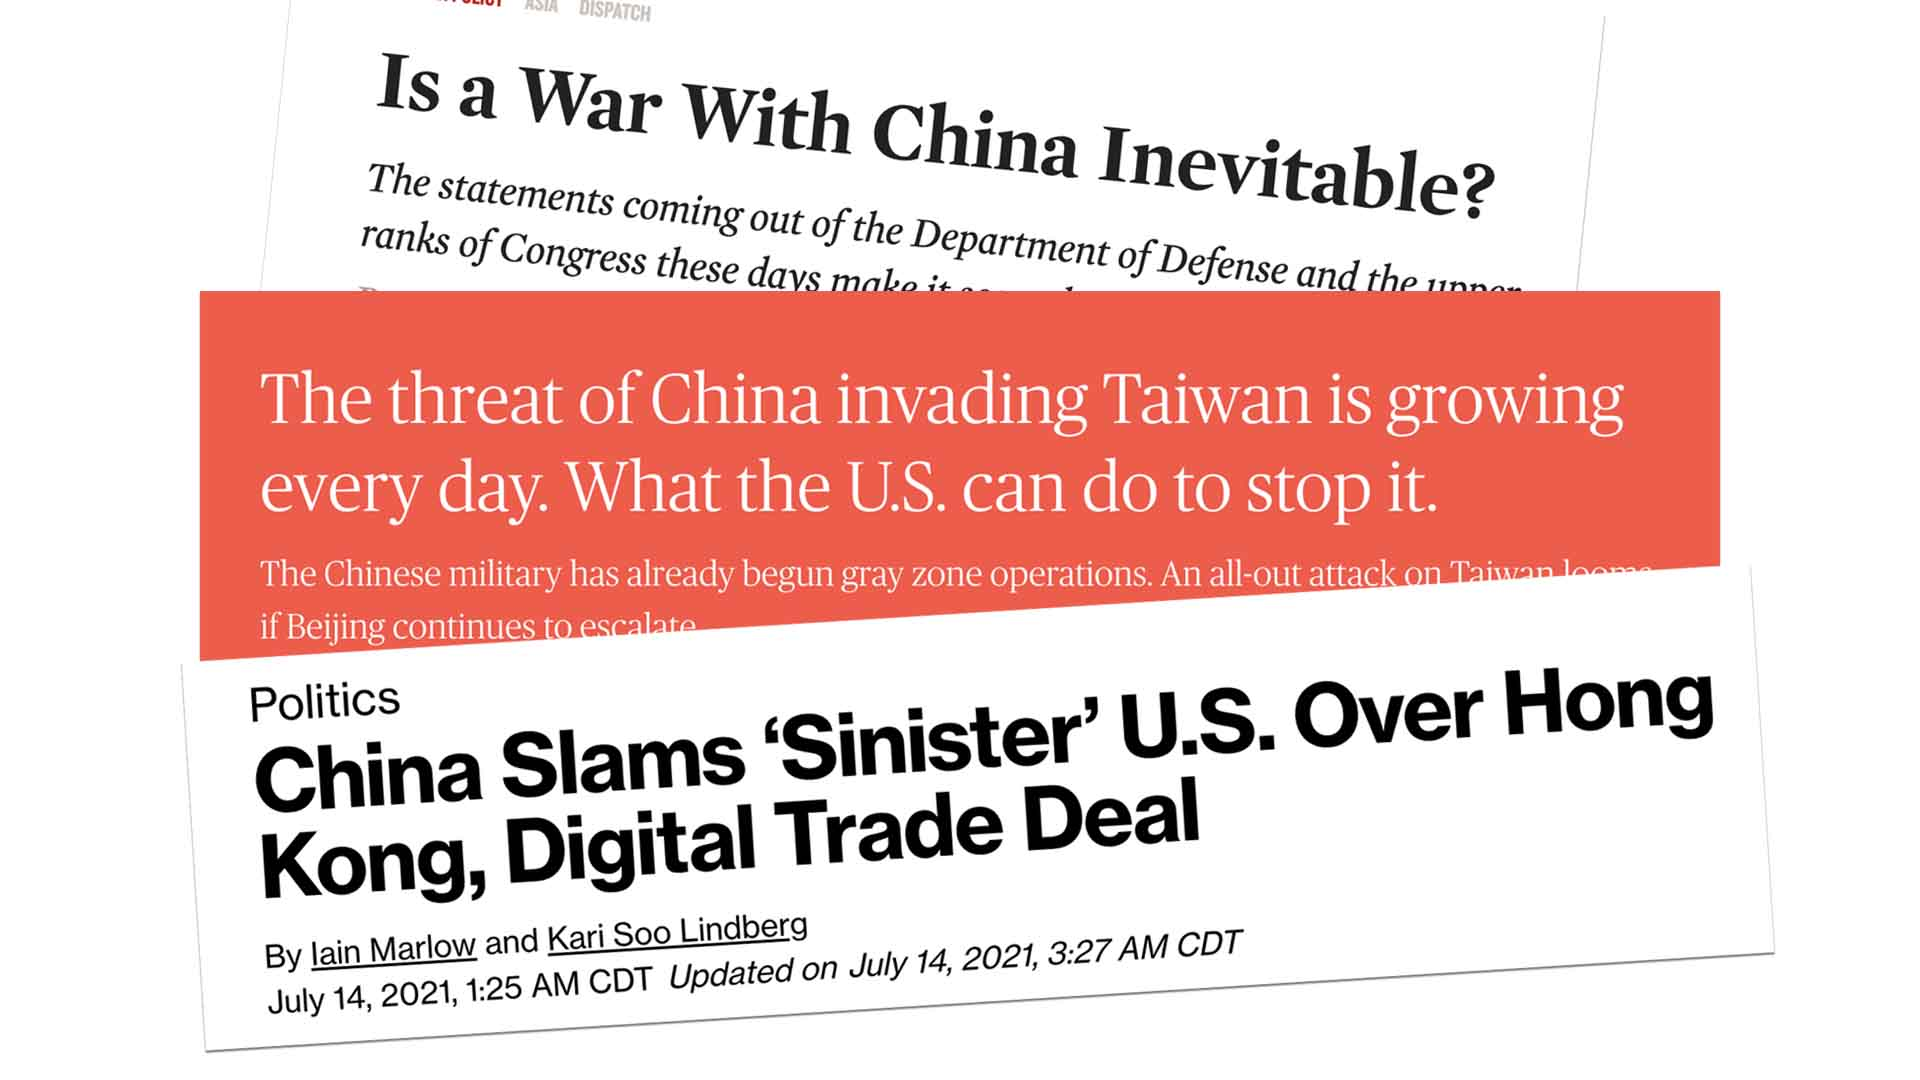 Alarming headlines about US-China relations.